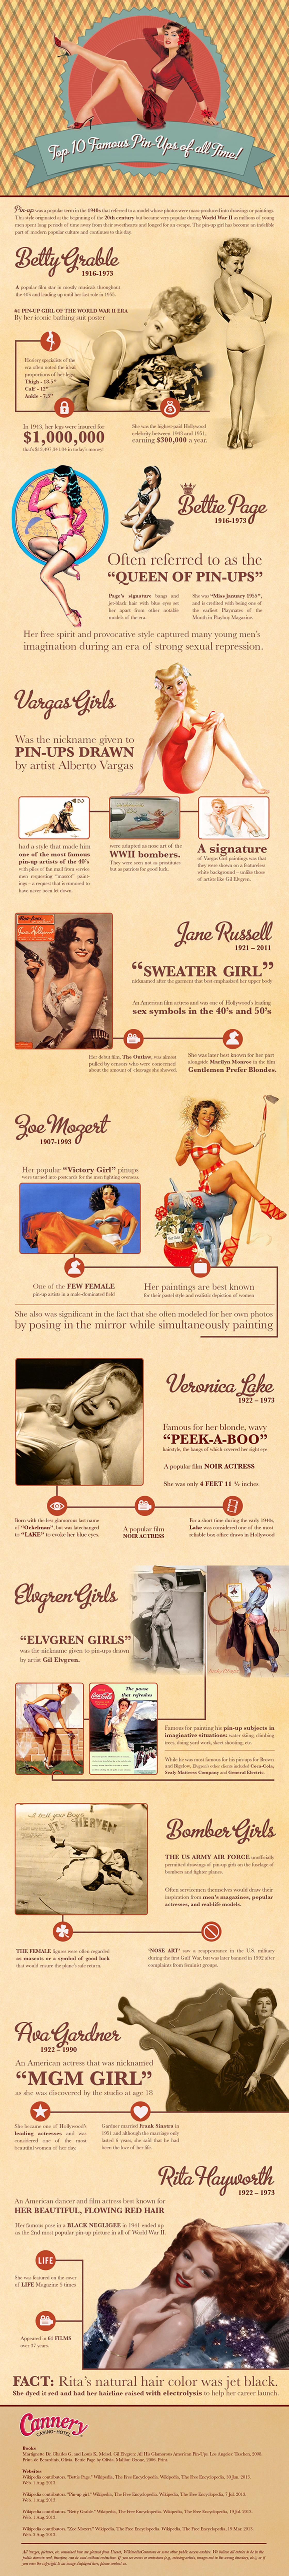 Top 10 Famous Pin-Ups of All Time! Infographic